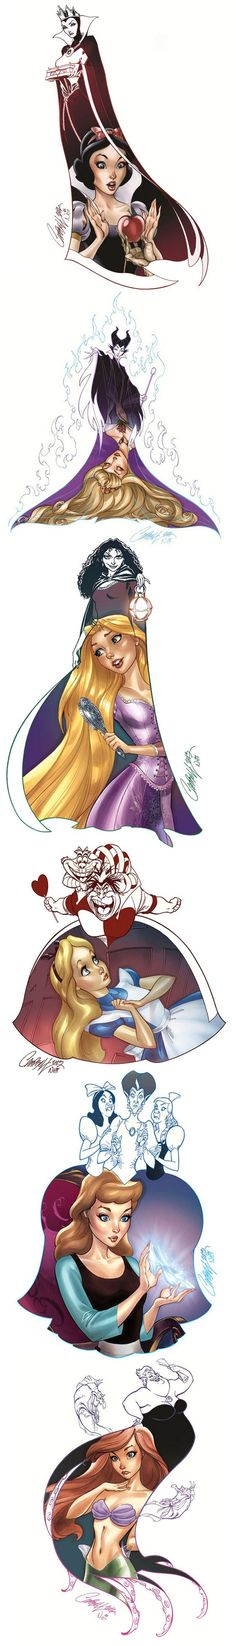 Love the little mermaid one. Good versus evil